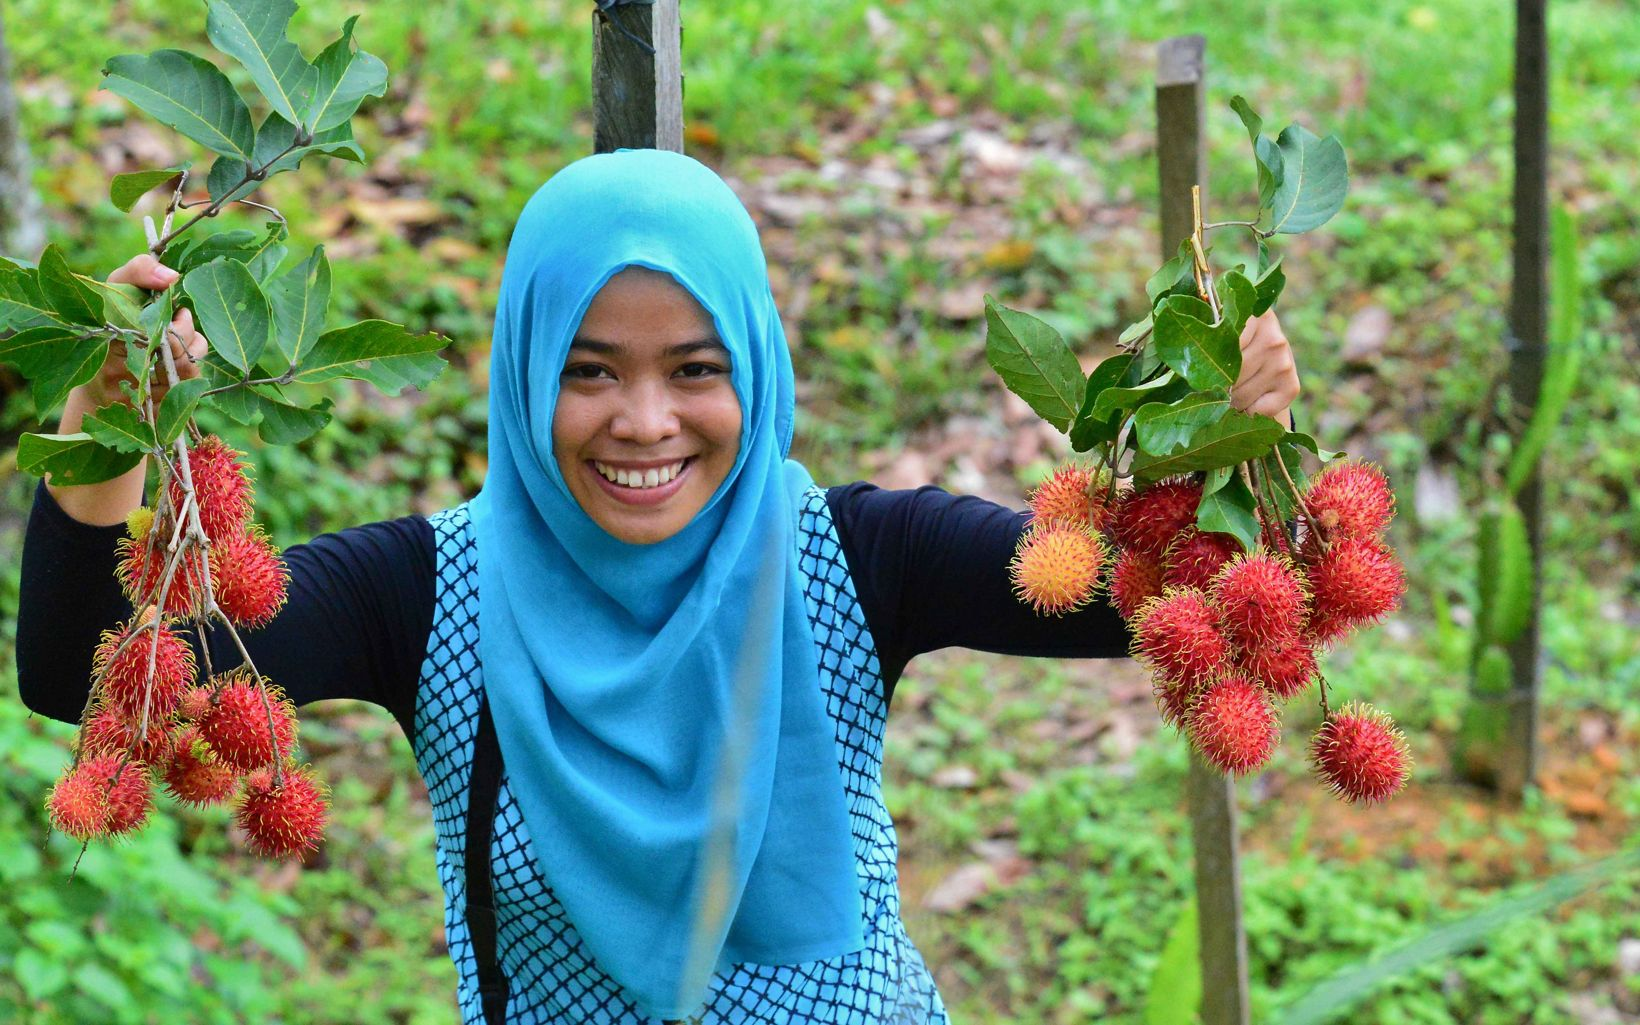 Local villagers can sell rambutan – an example of how healthy forests can help provide revenue for local communities.